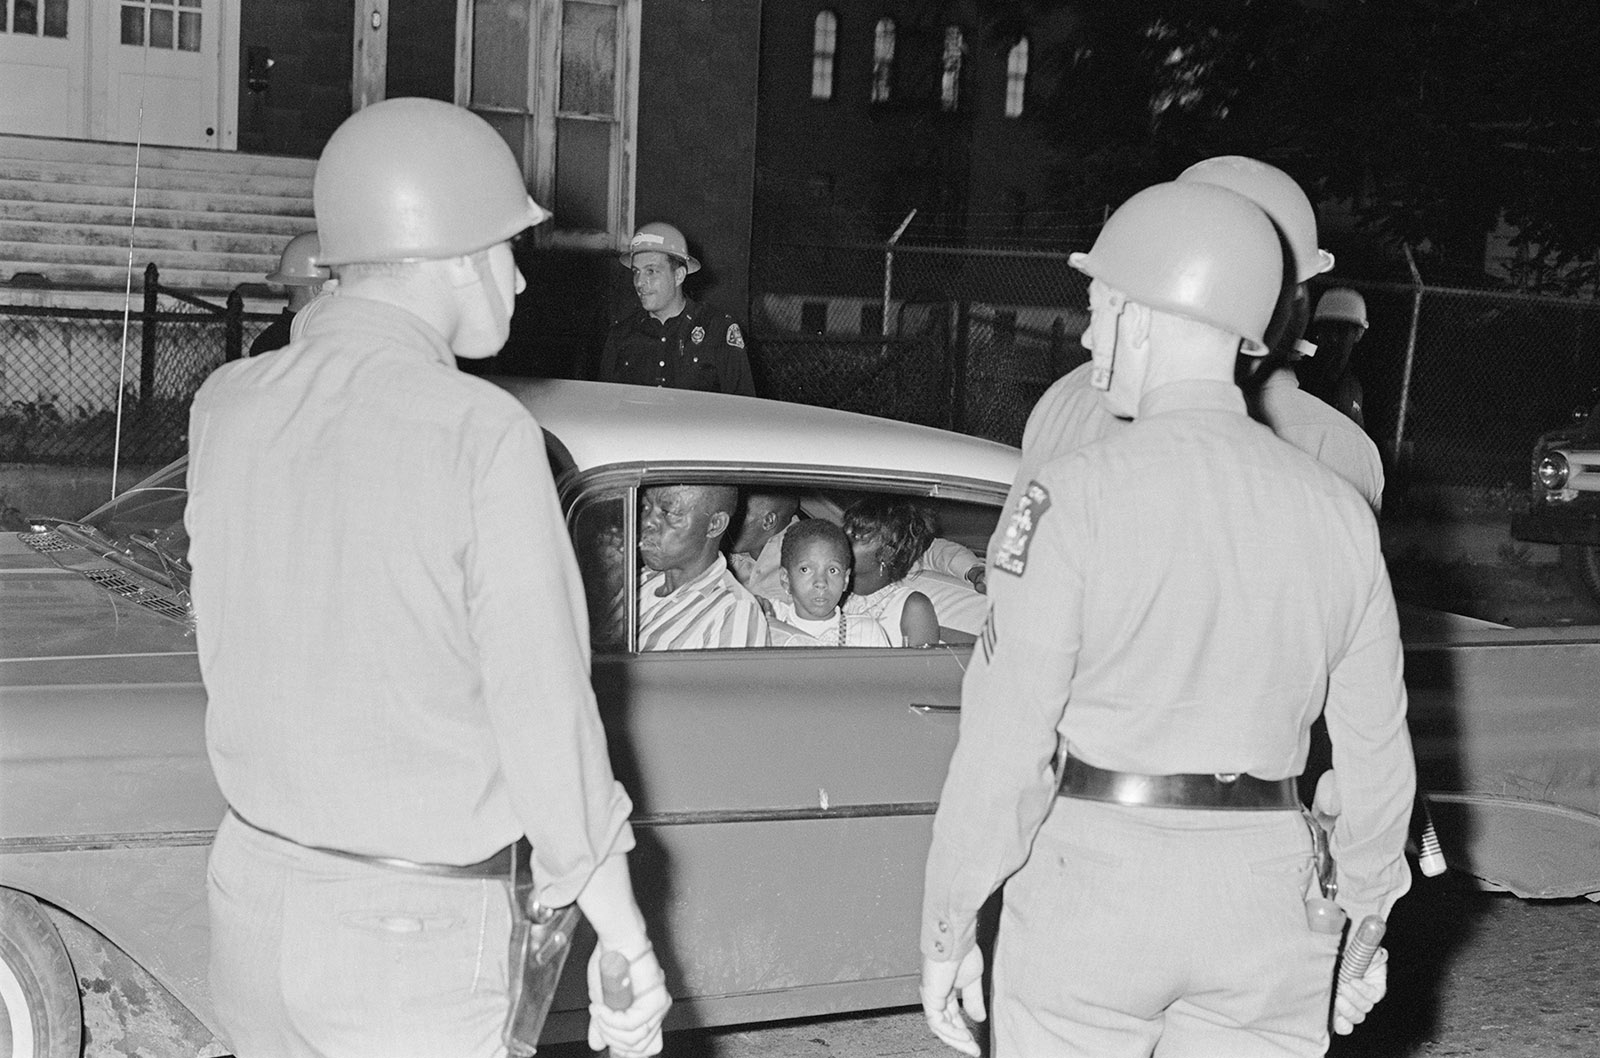 New York State Police officers stopping a black family during the Rochester race riot, July 1964